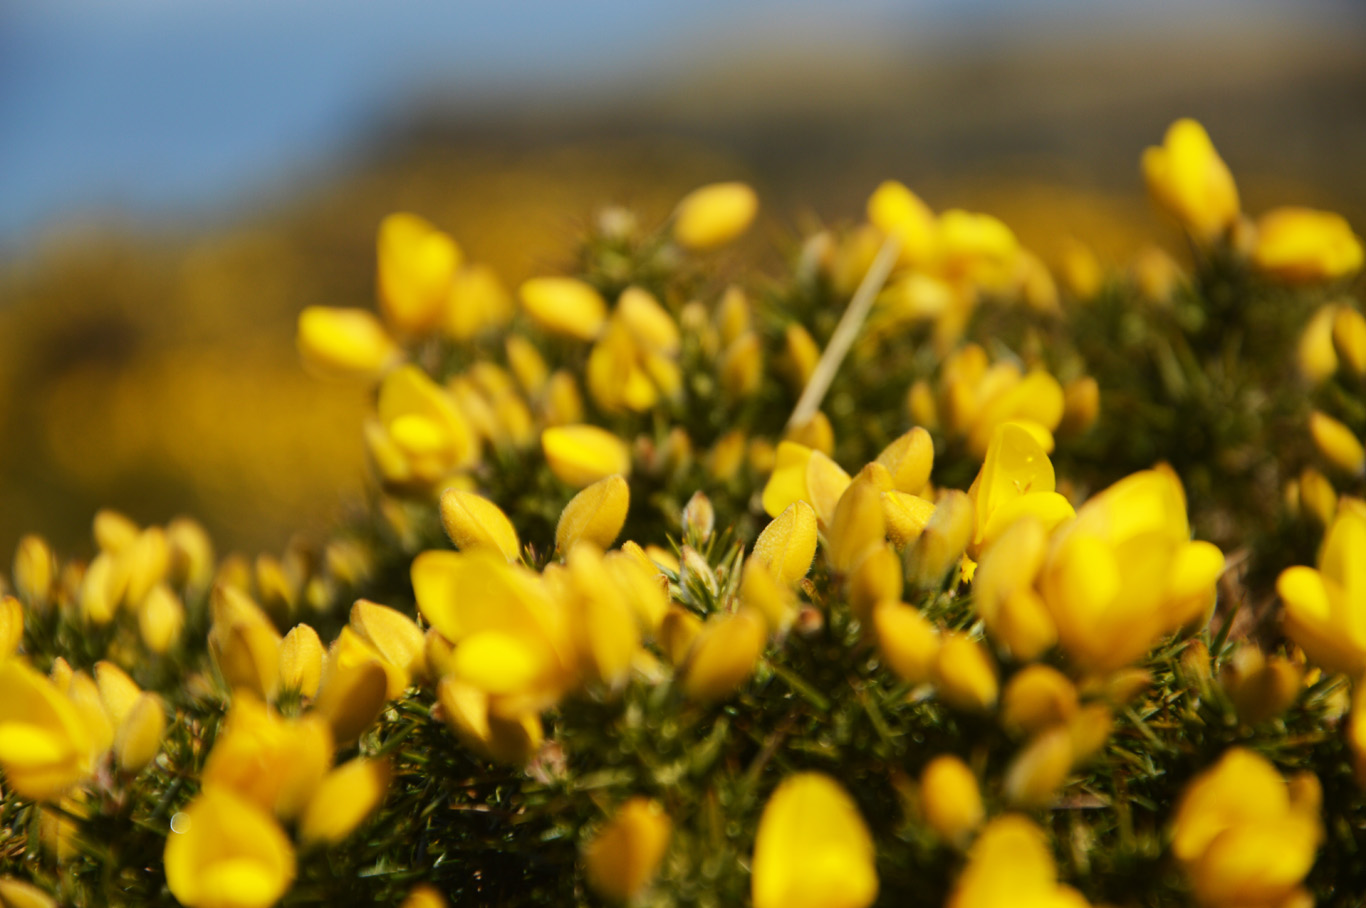 Gorse - yellow flowers